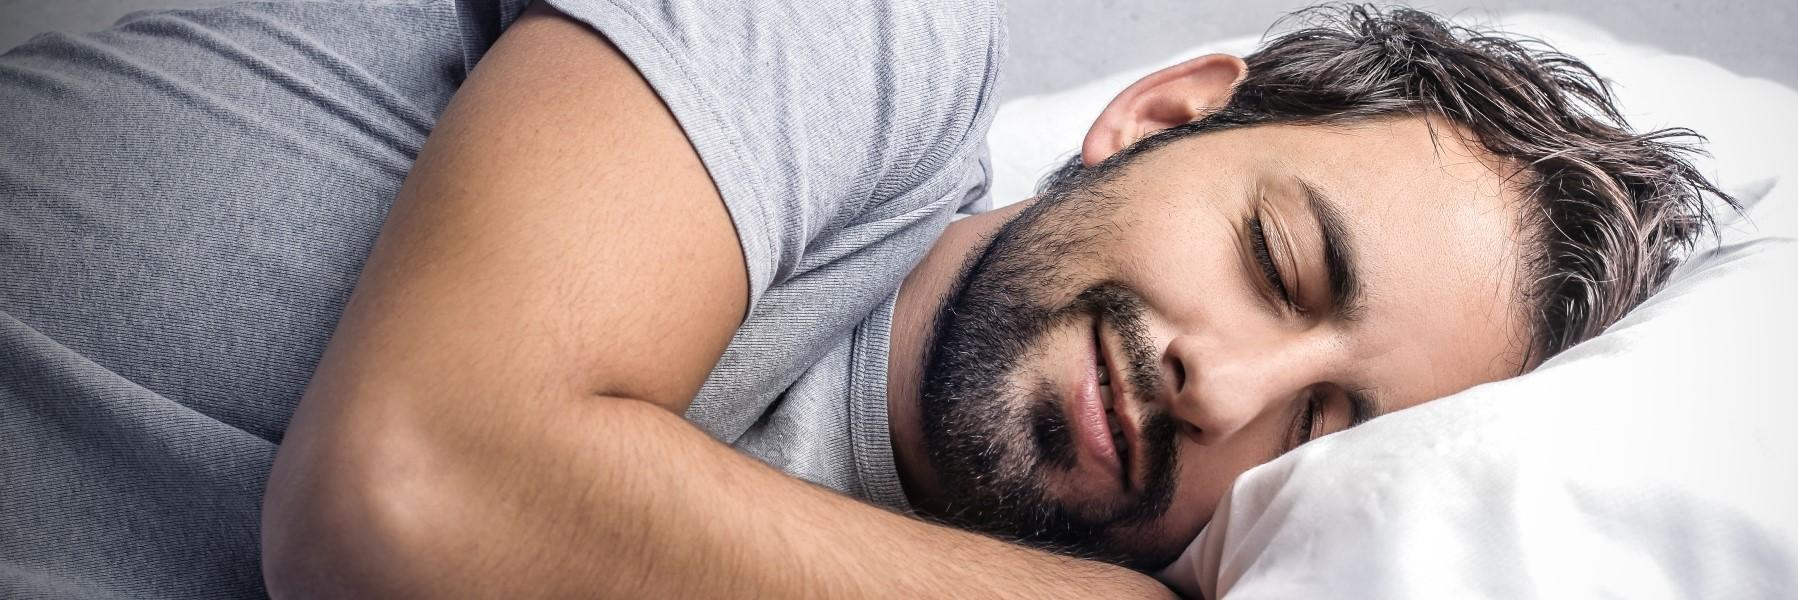 Sleep apnea treatment in humble tx